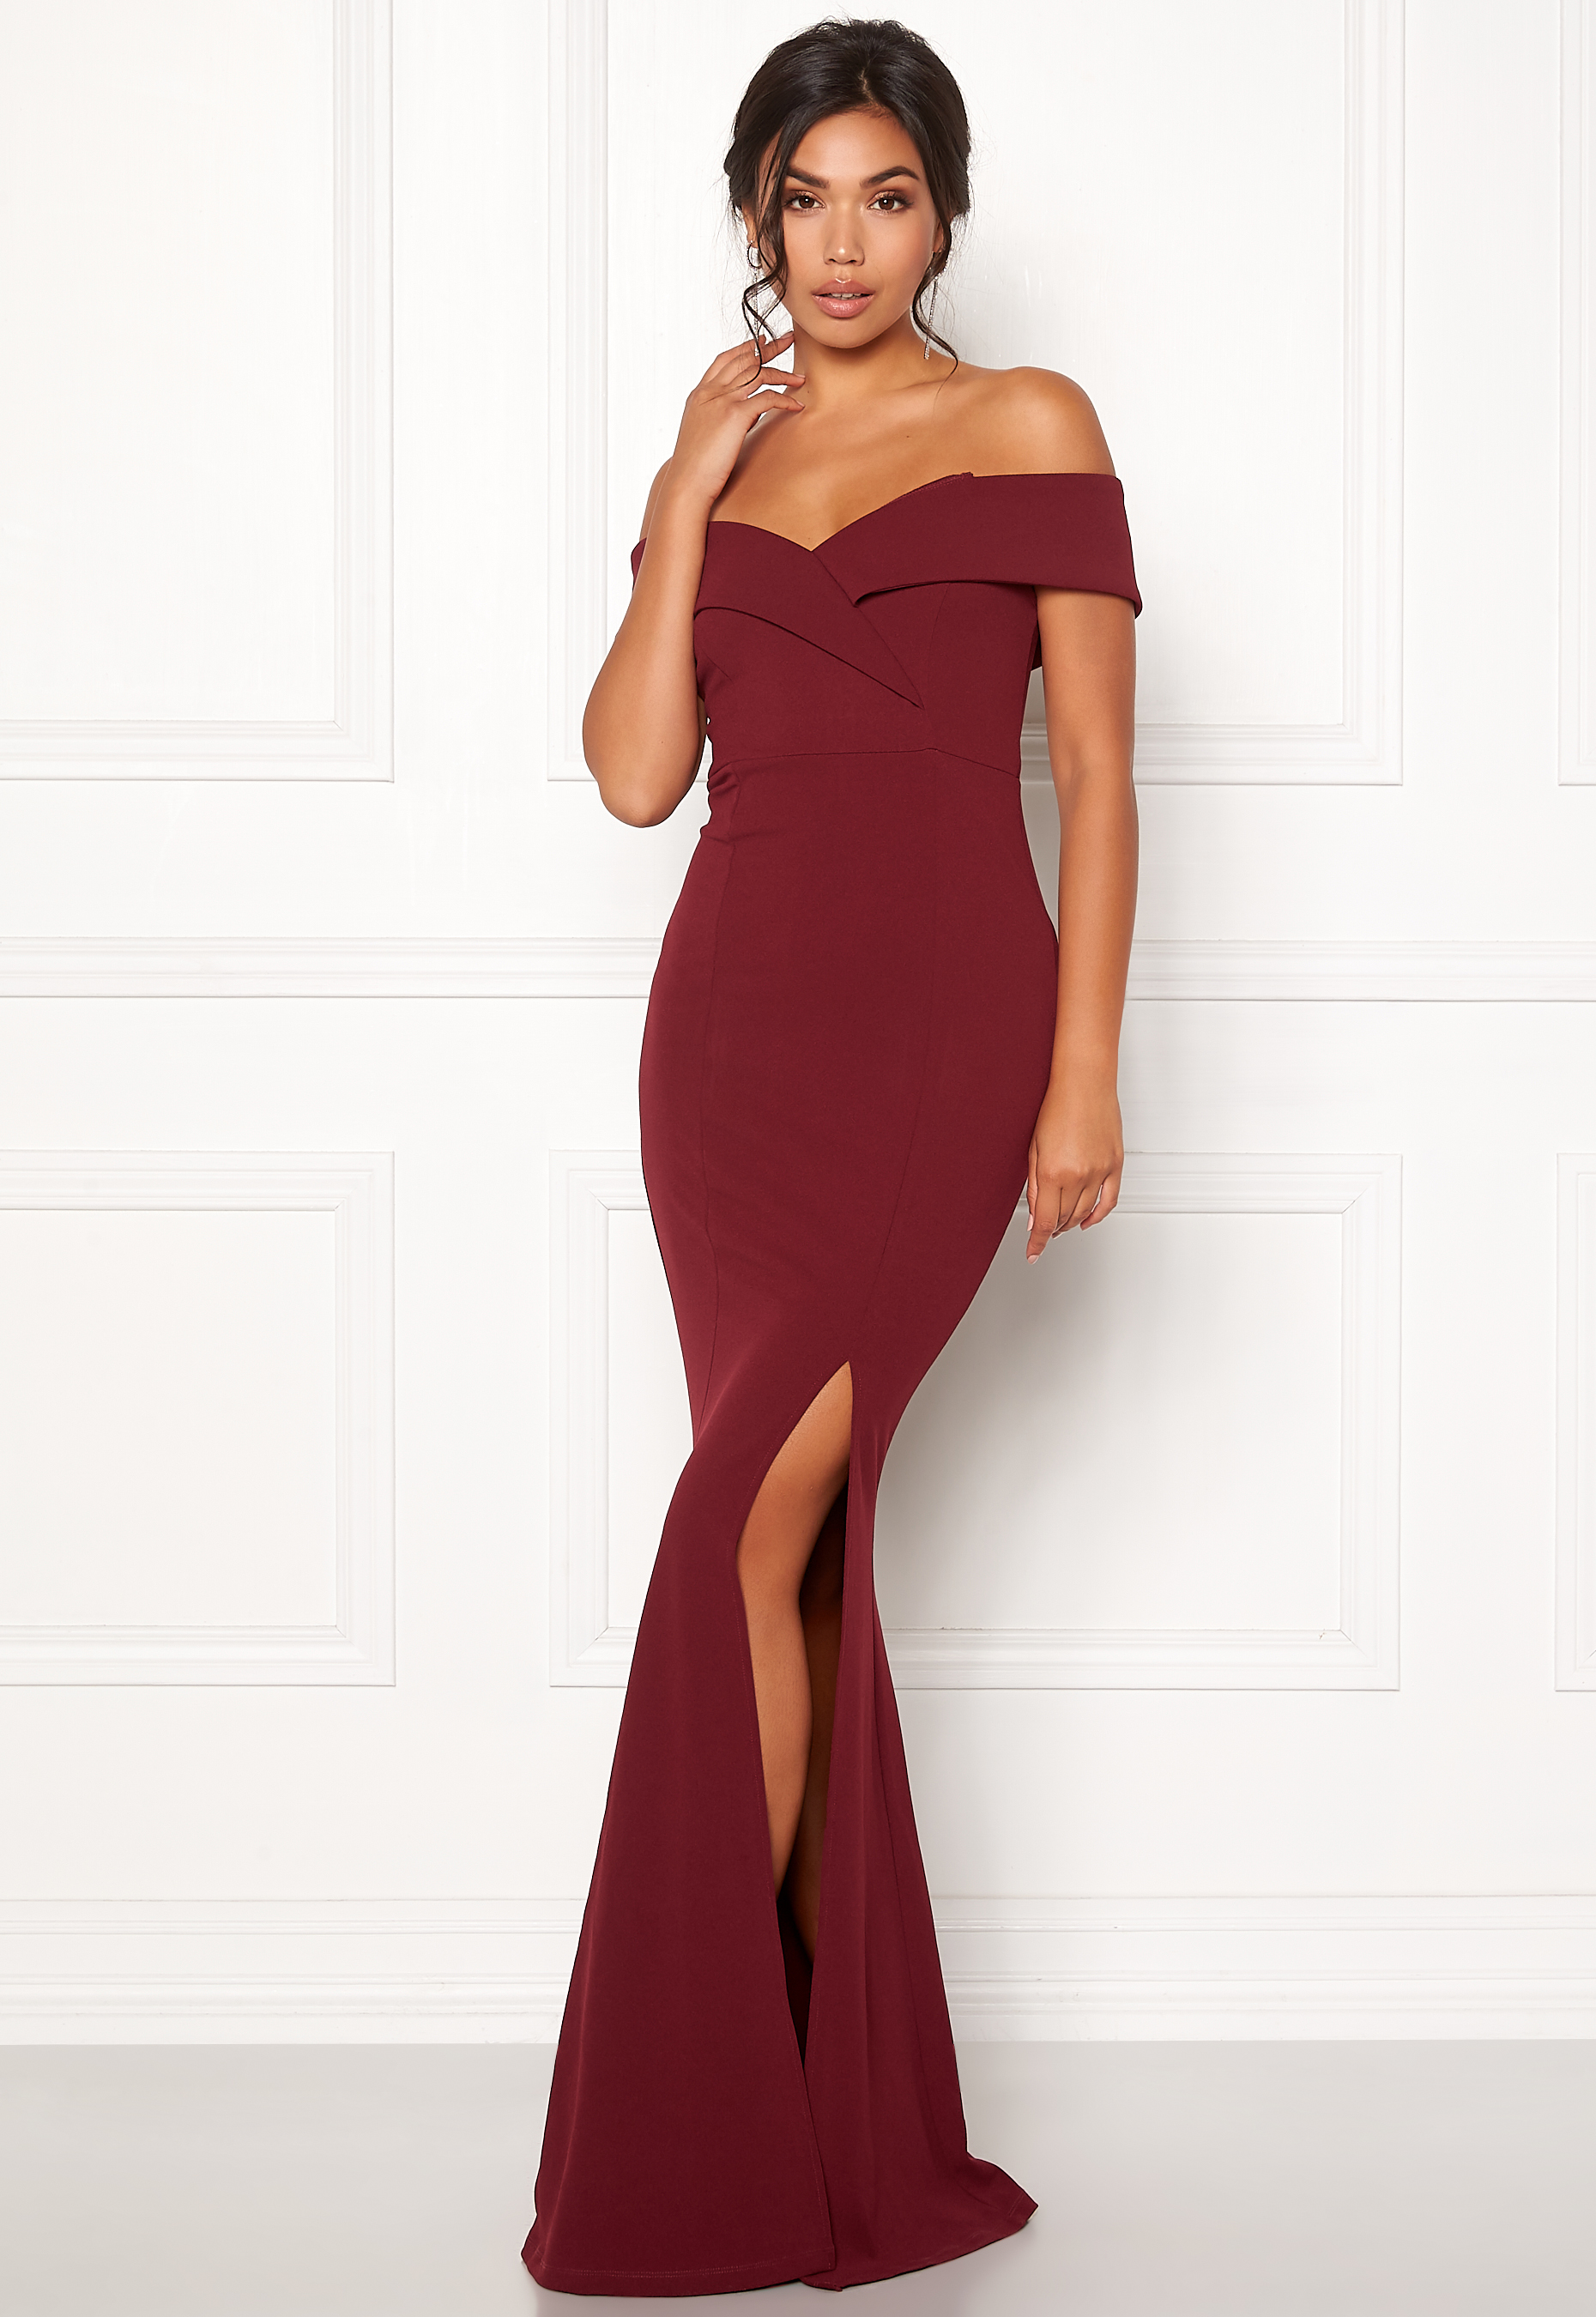 feb12a117d40 BUBBLEROOM Marianna folded off shoulder gown Wine-red - Bubbleroom